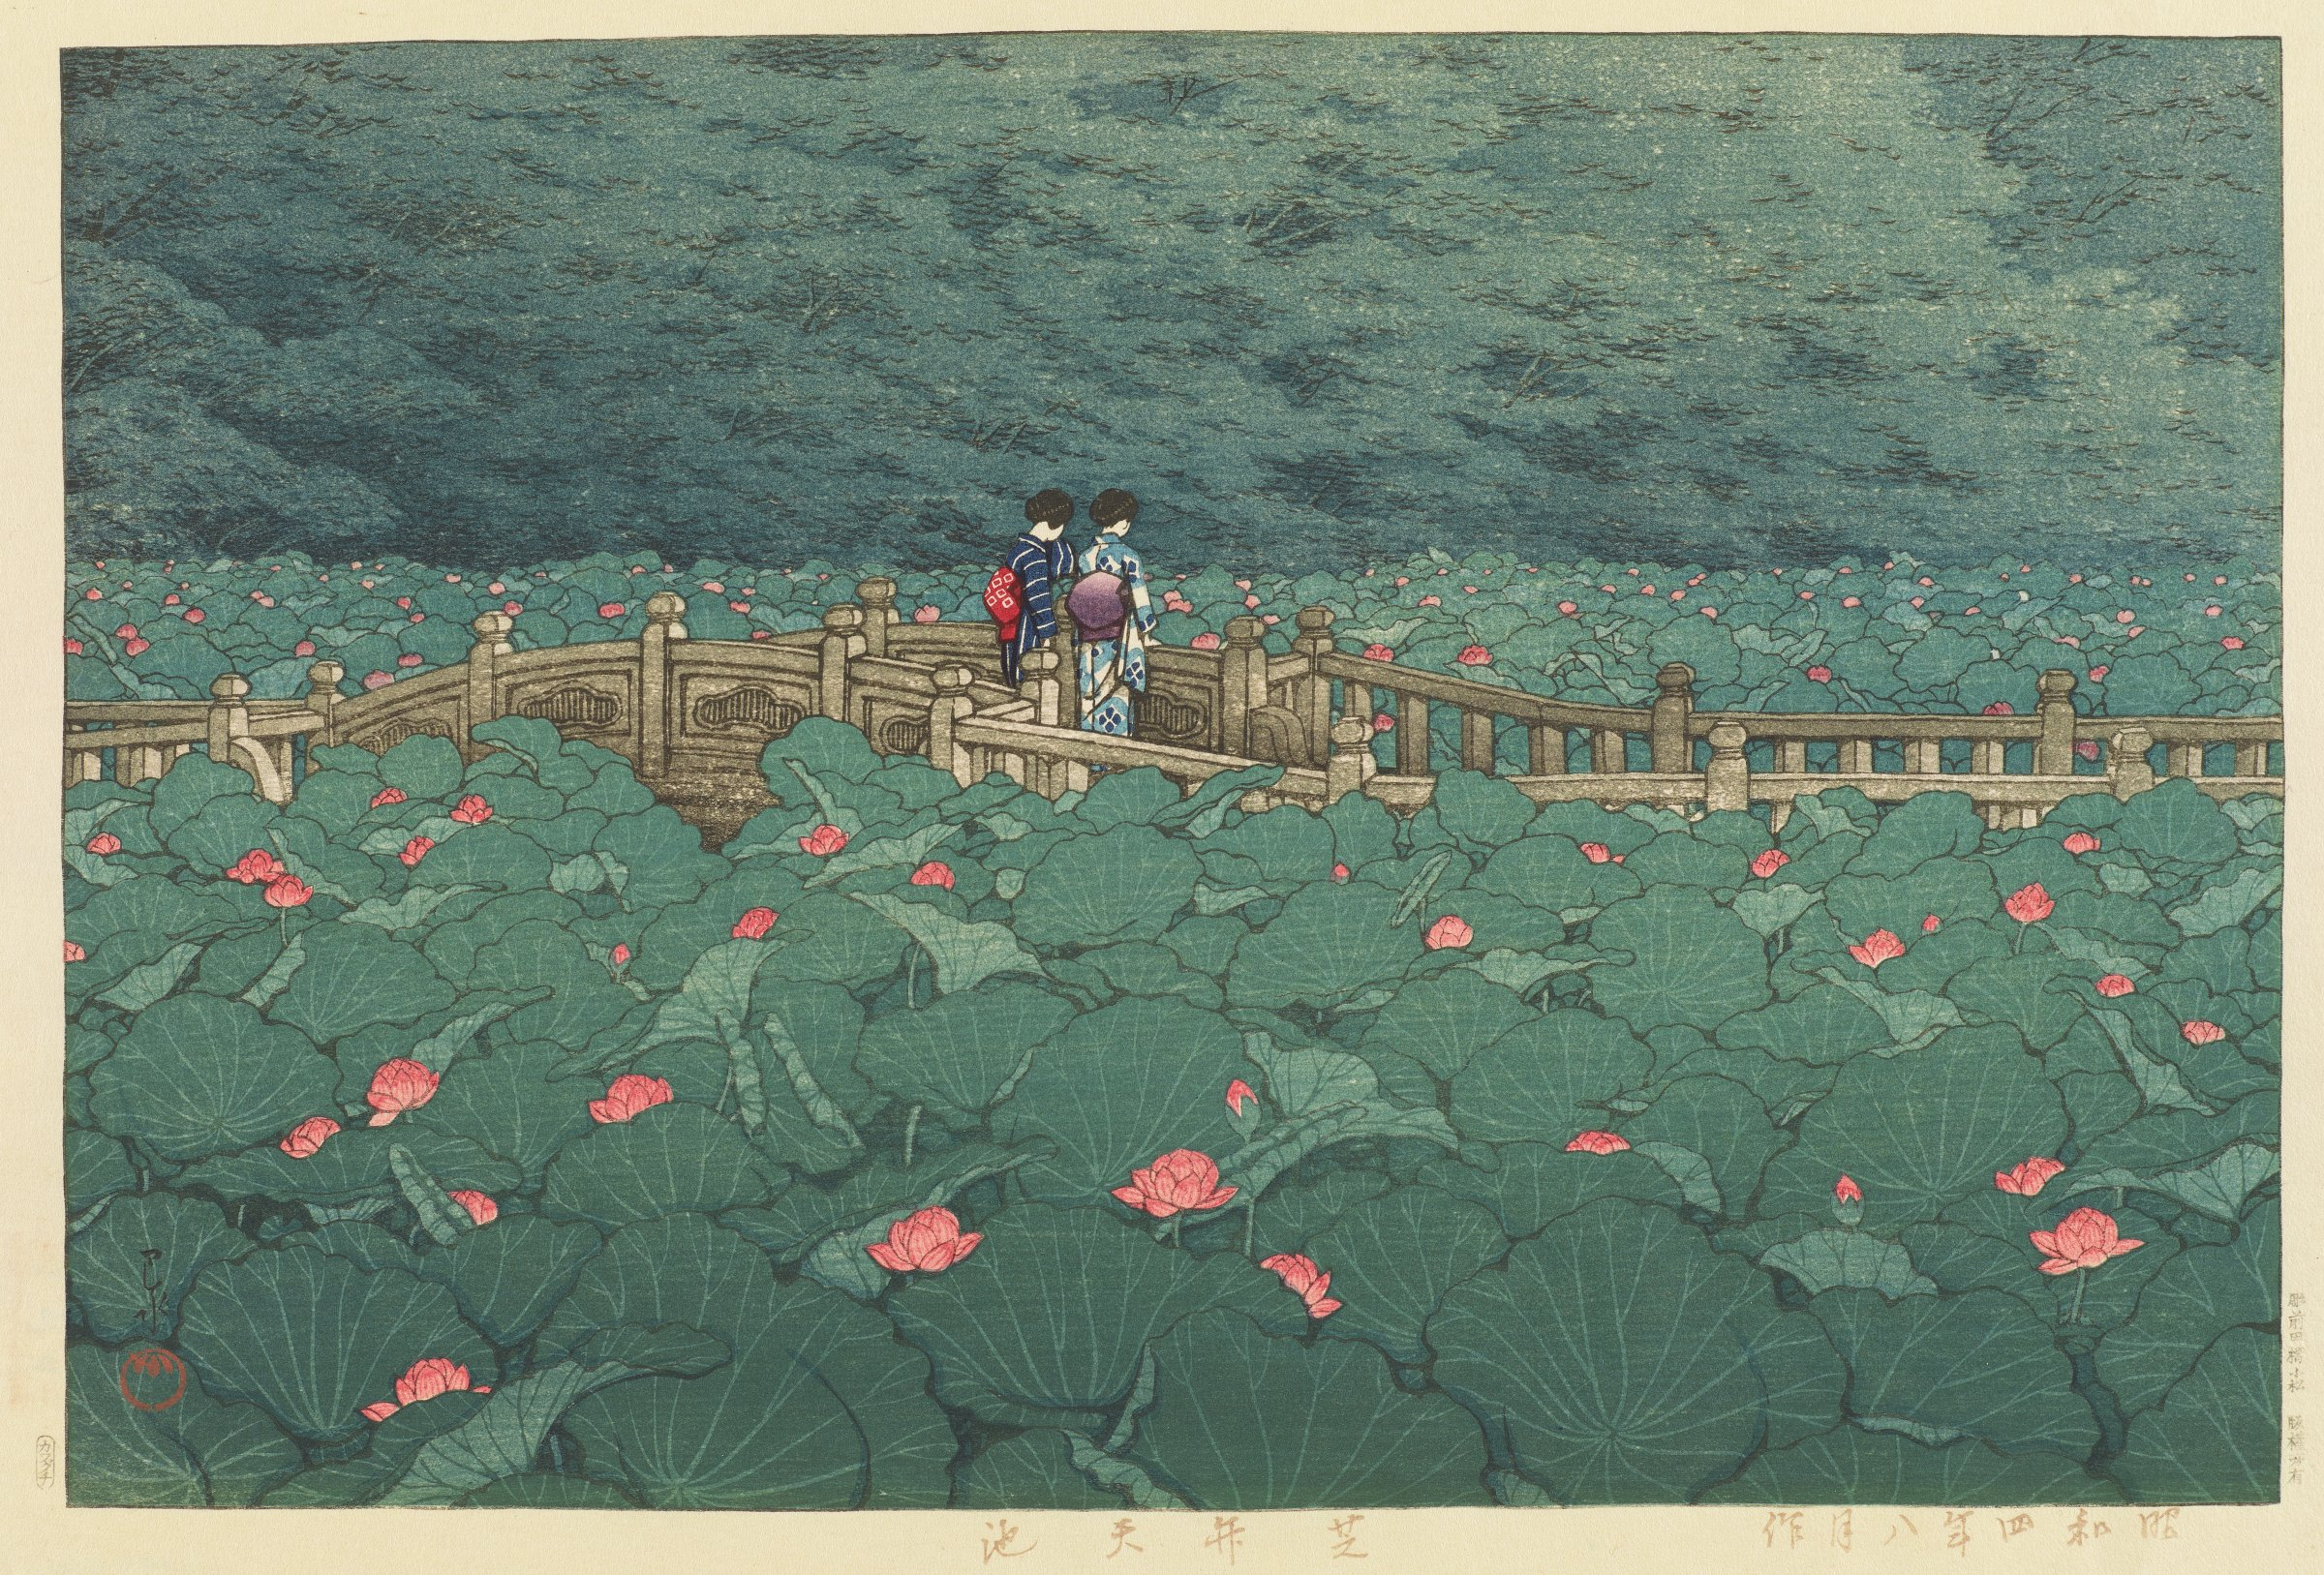 The Footbridge Pont at Benten Shrine in Shiba, Kawase Hasui, ink and color on paper